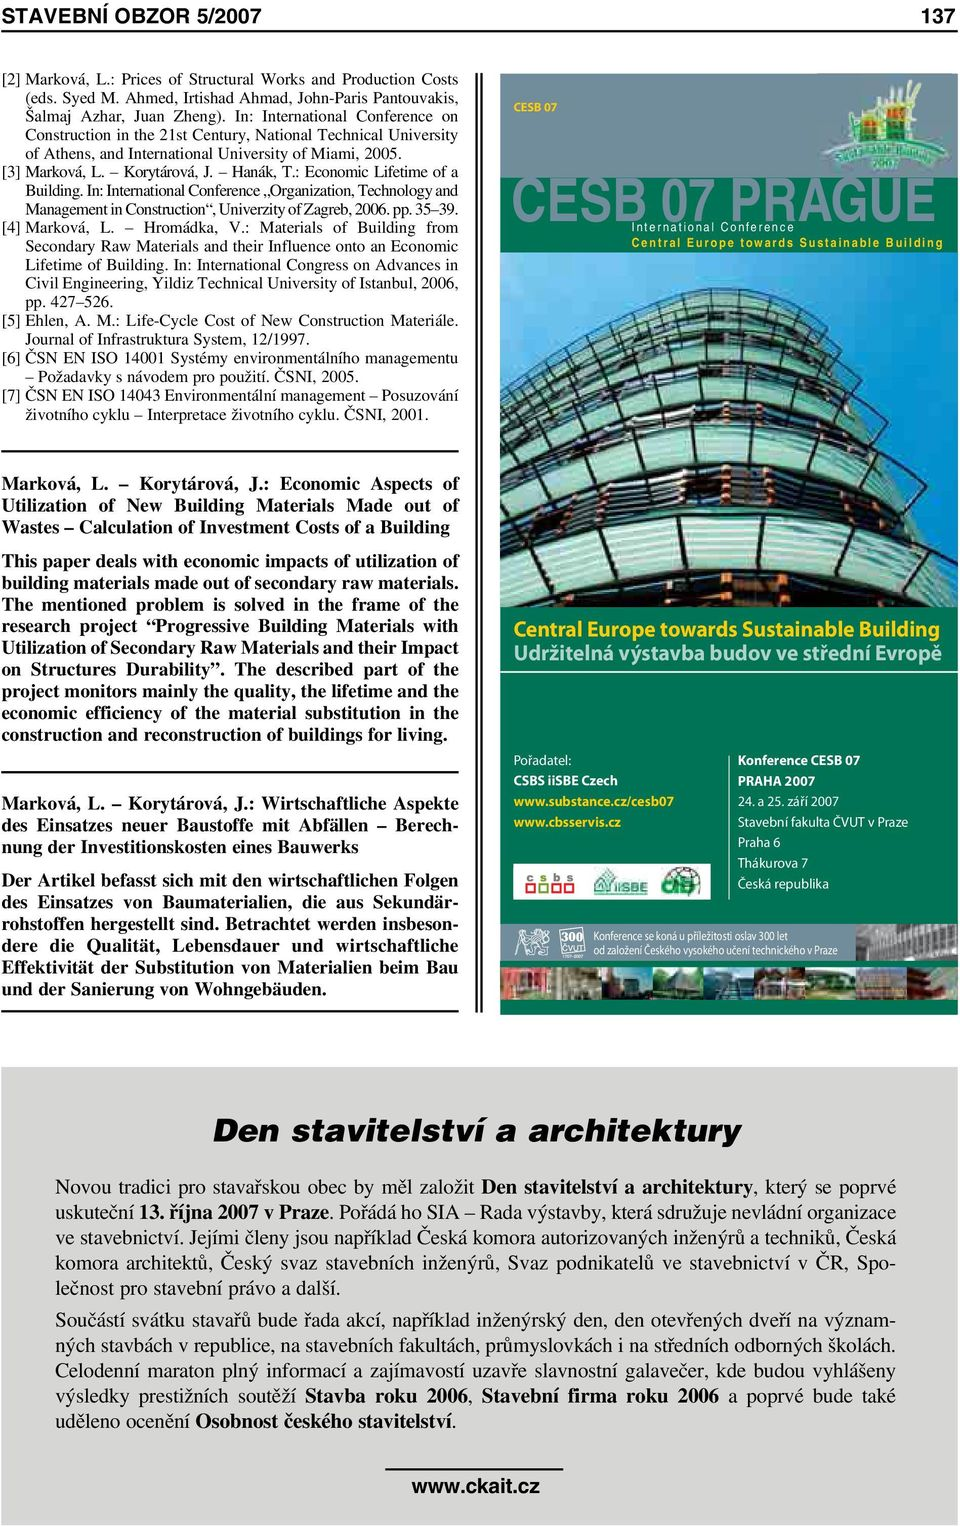 : Economic Lifetime of a Building. In: International Conference Organization, Technology and Management in Construction, Univerzity of Zagreb, 2006. pp. 35 39. [4] Marková, L. Hromádka, V.